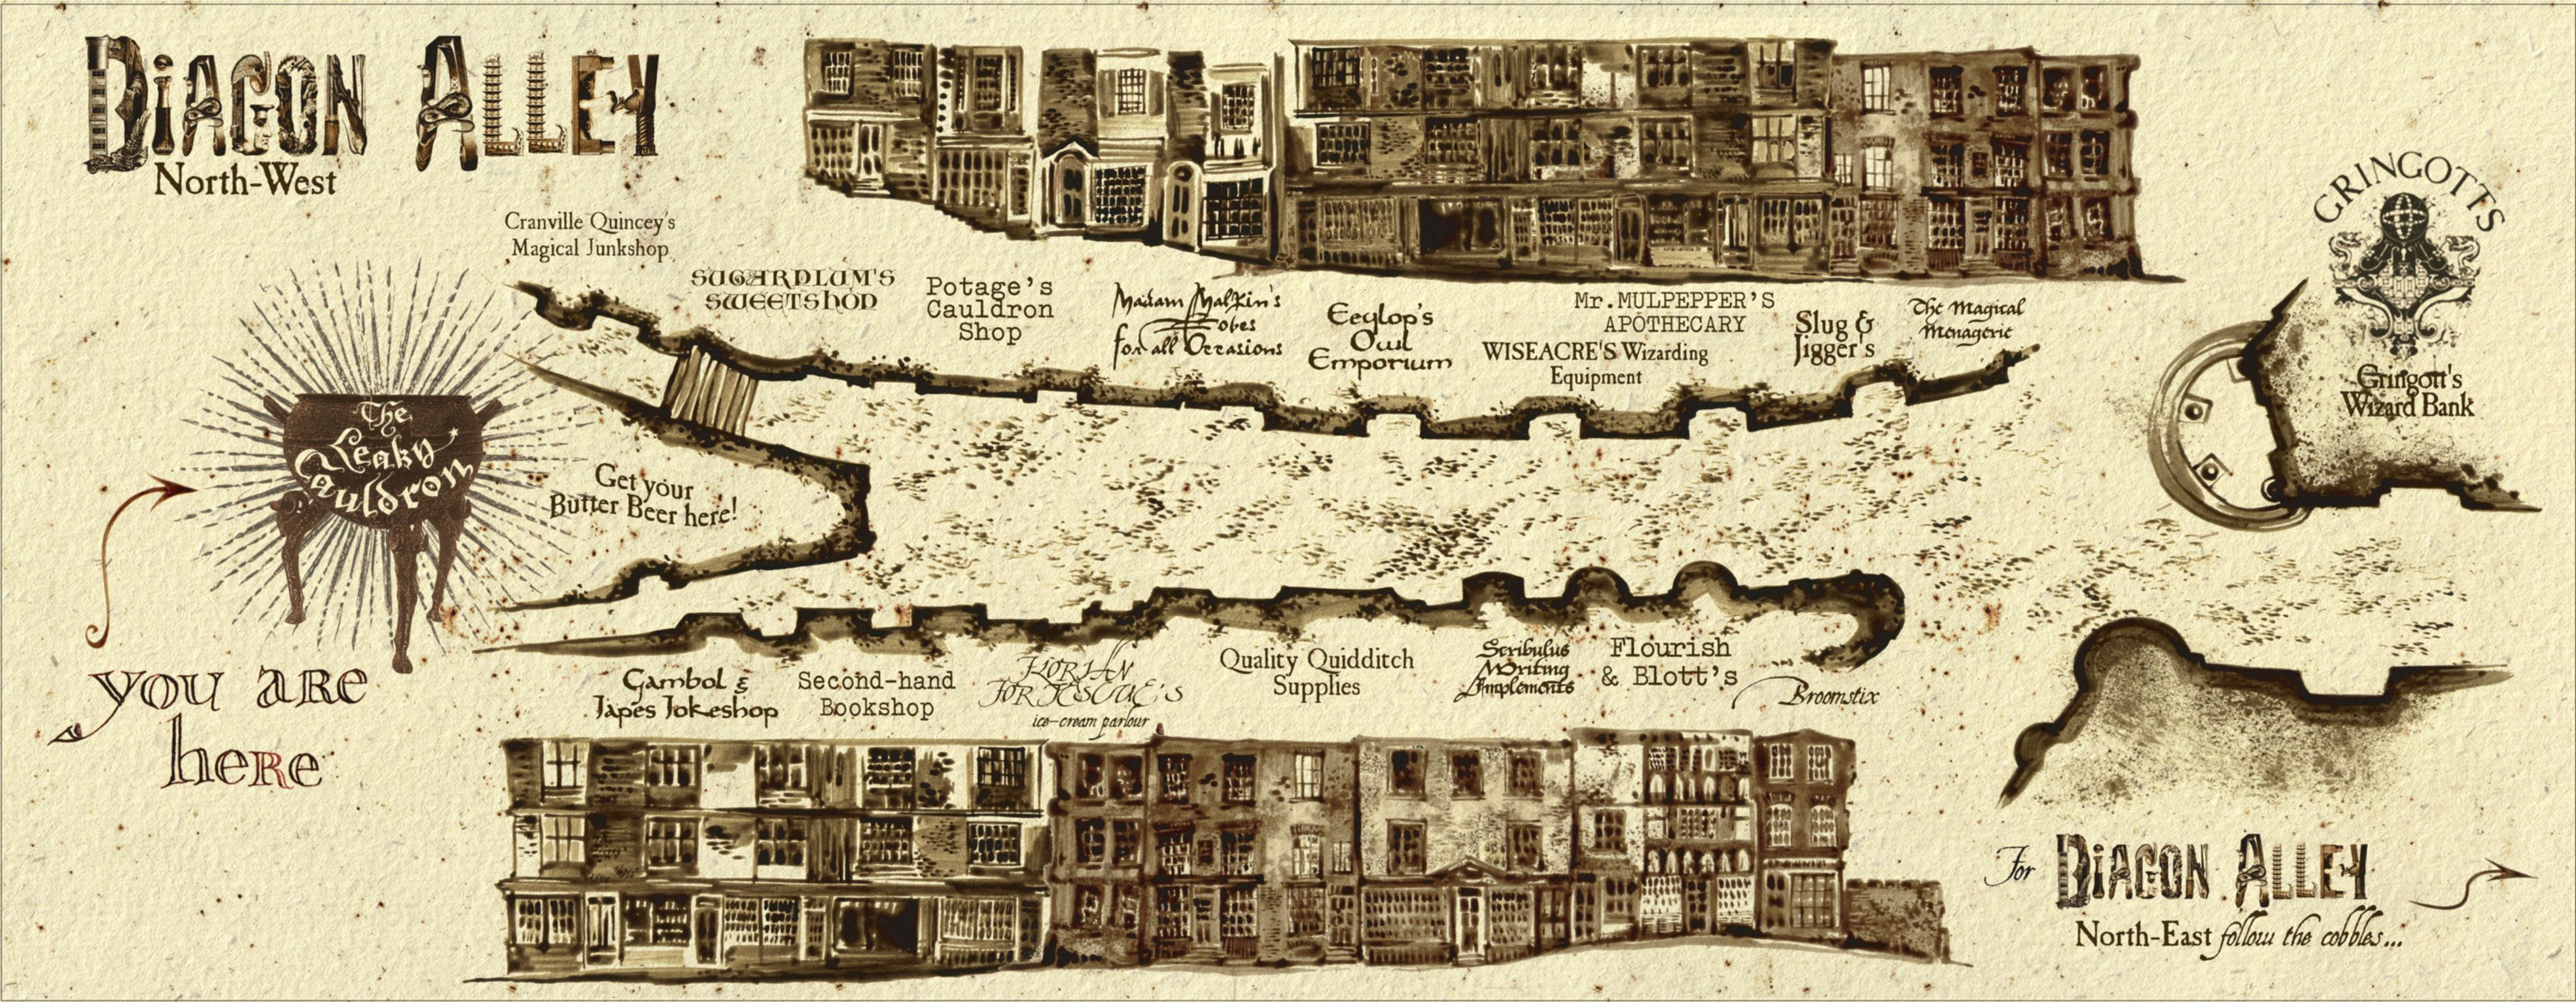 Designing Diagon Alley - Pottermore | Diagon alley, Harry ... on iowa county map, j.k. rowling map, ministry of magic map, wizard map, harry potter alley map, charing cross galloway street map, oklahoma tornado alley map, chamber of secrets map, hogwarts map, home map,